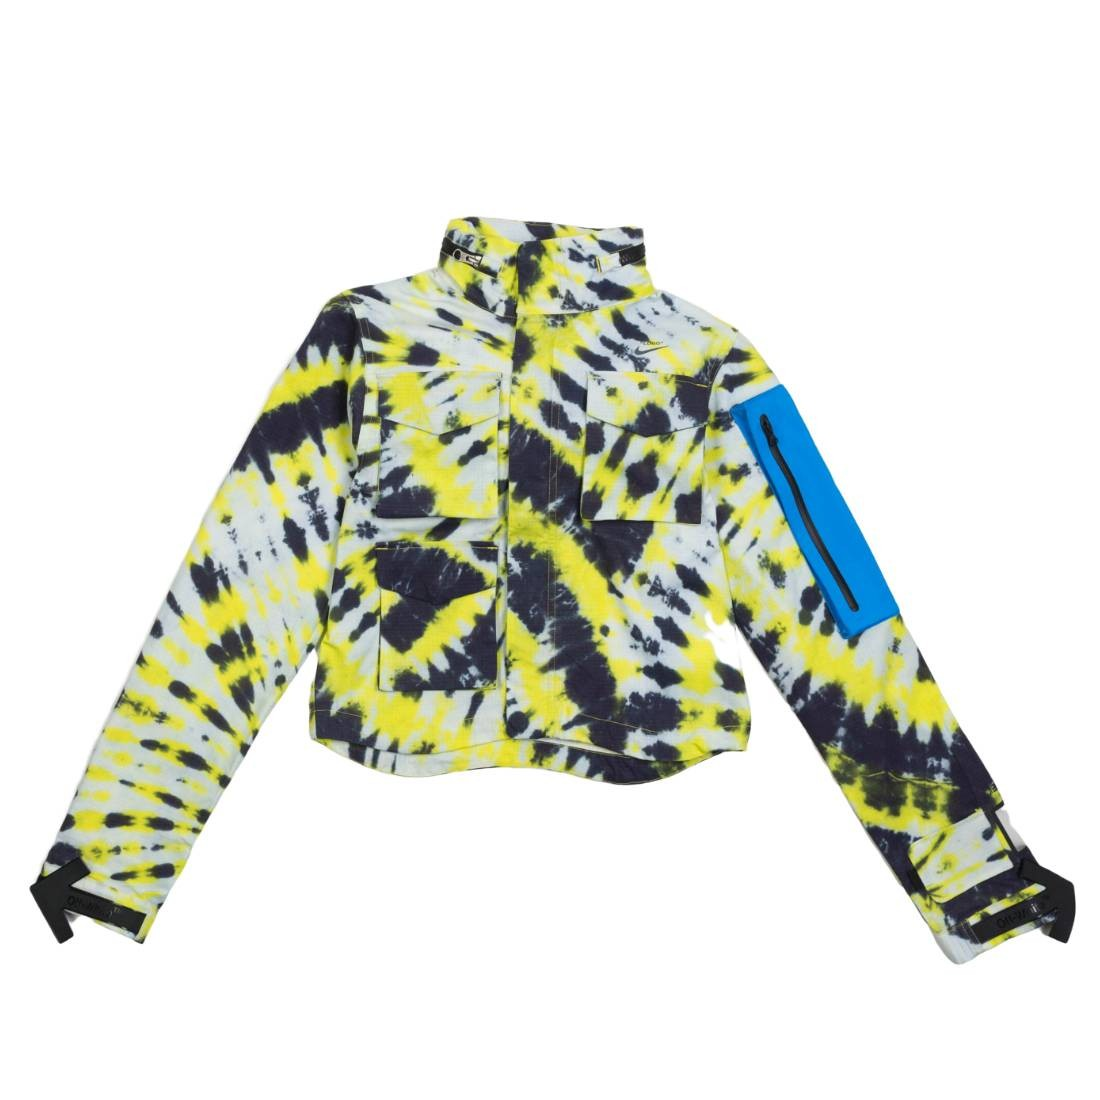 Nike X Off White Women Nrg As #27 Aop Jacket (volt)